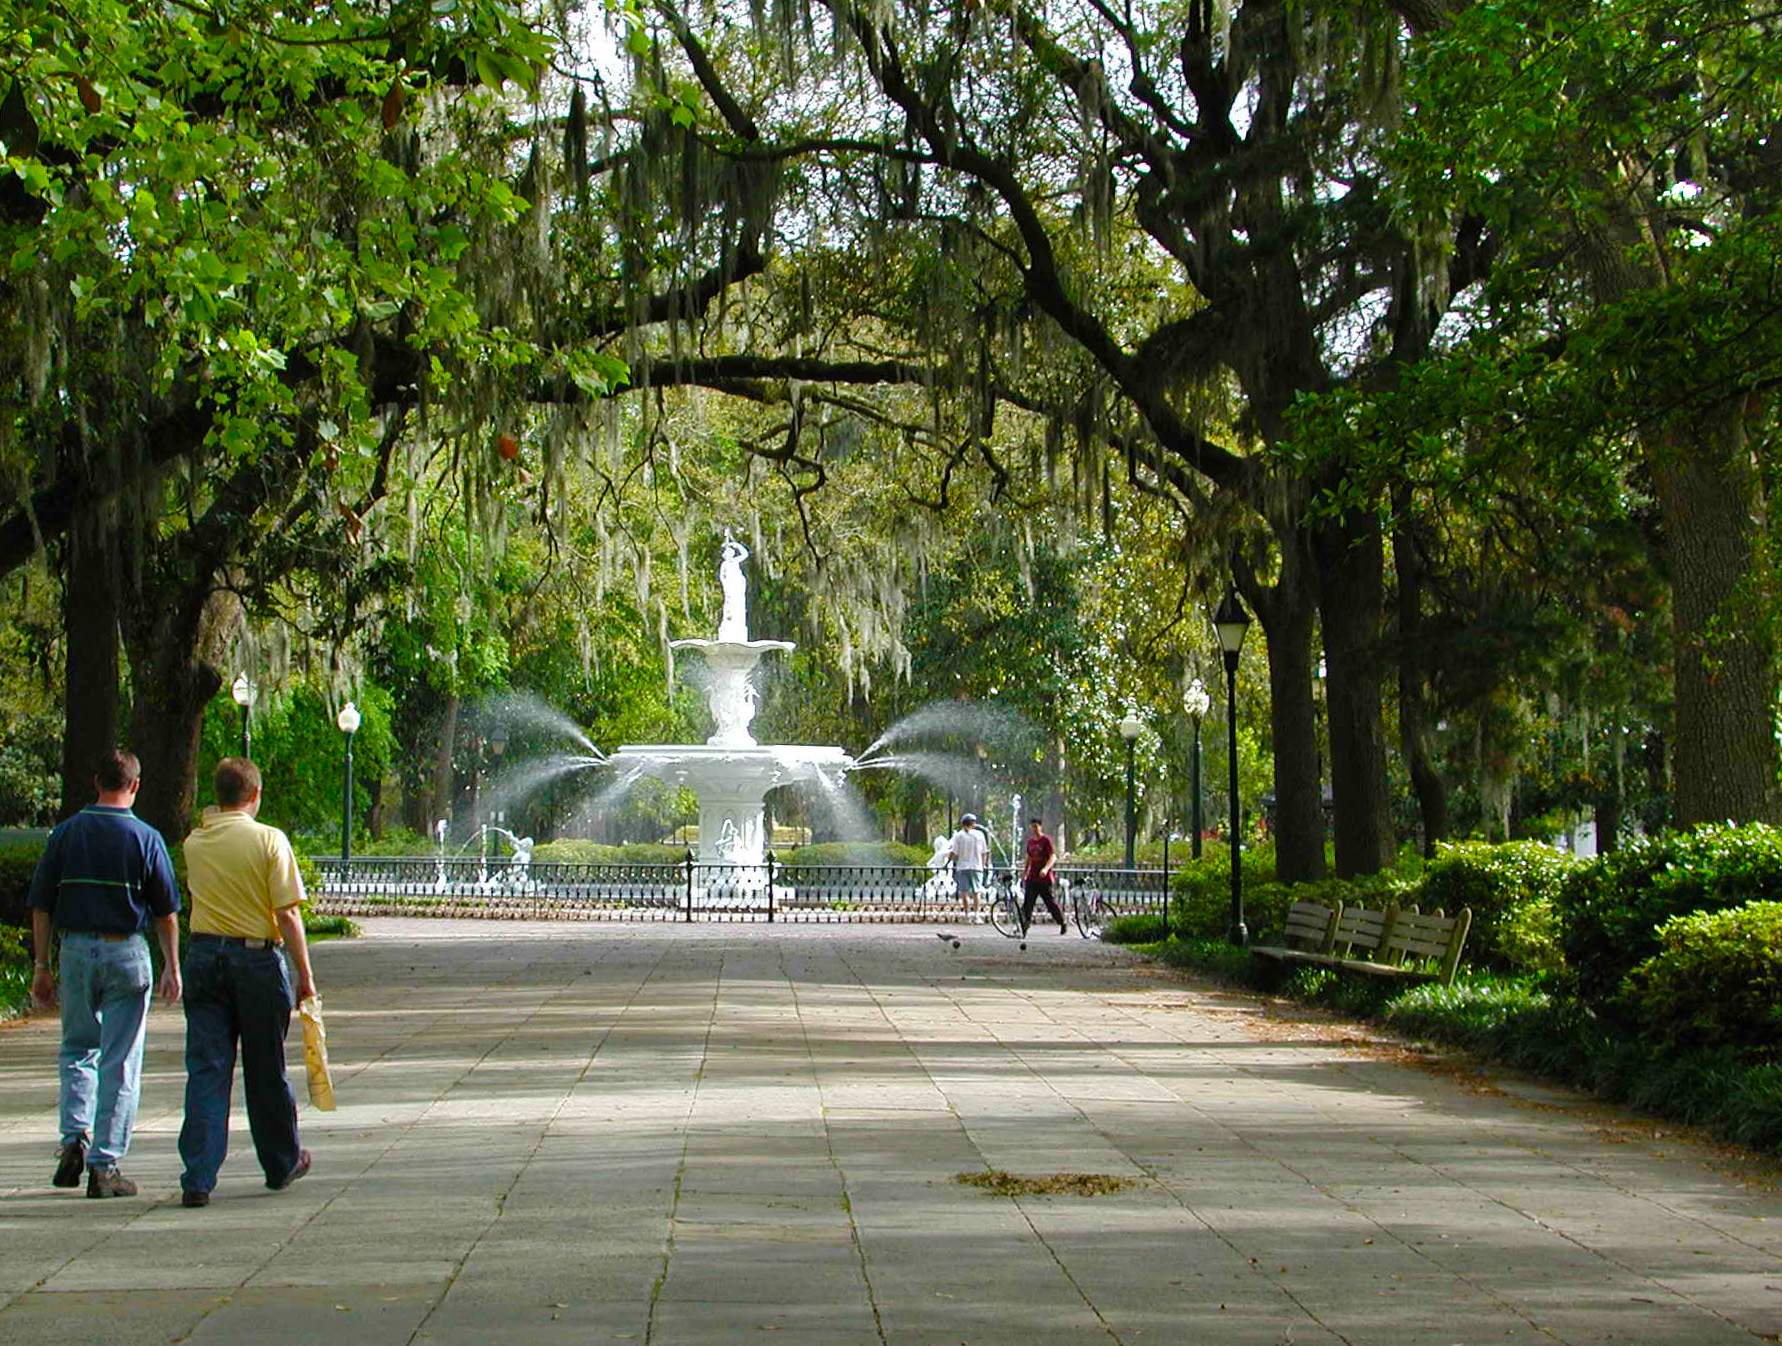 The Health of a City Depends on Its Trees